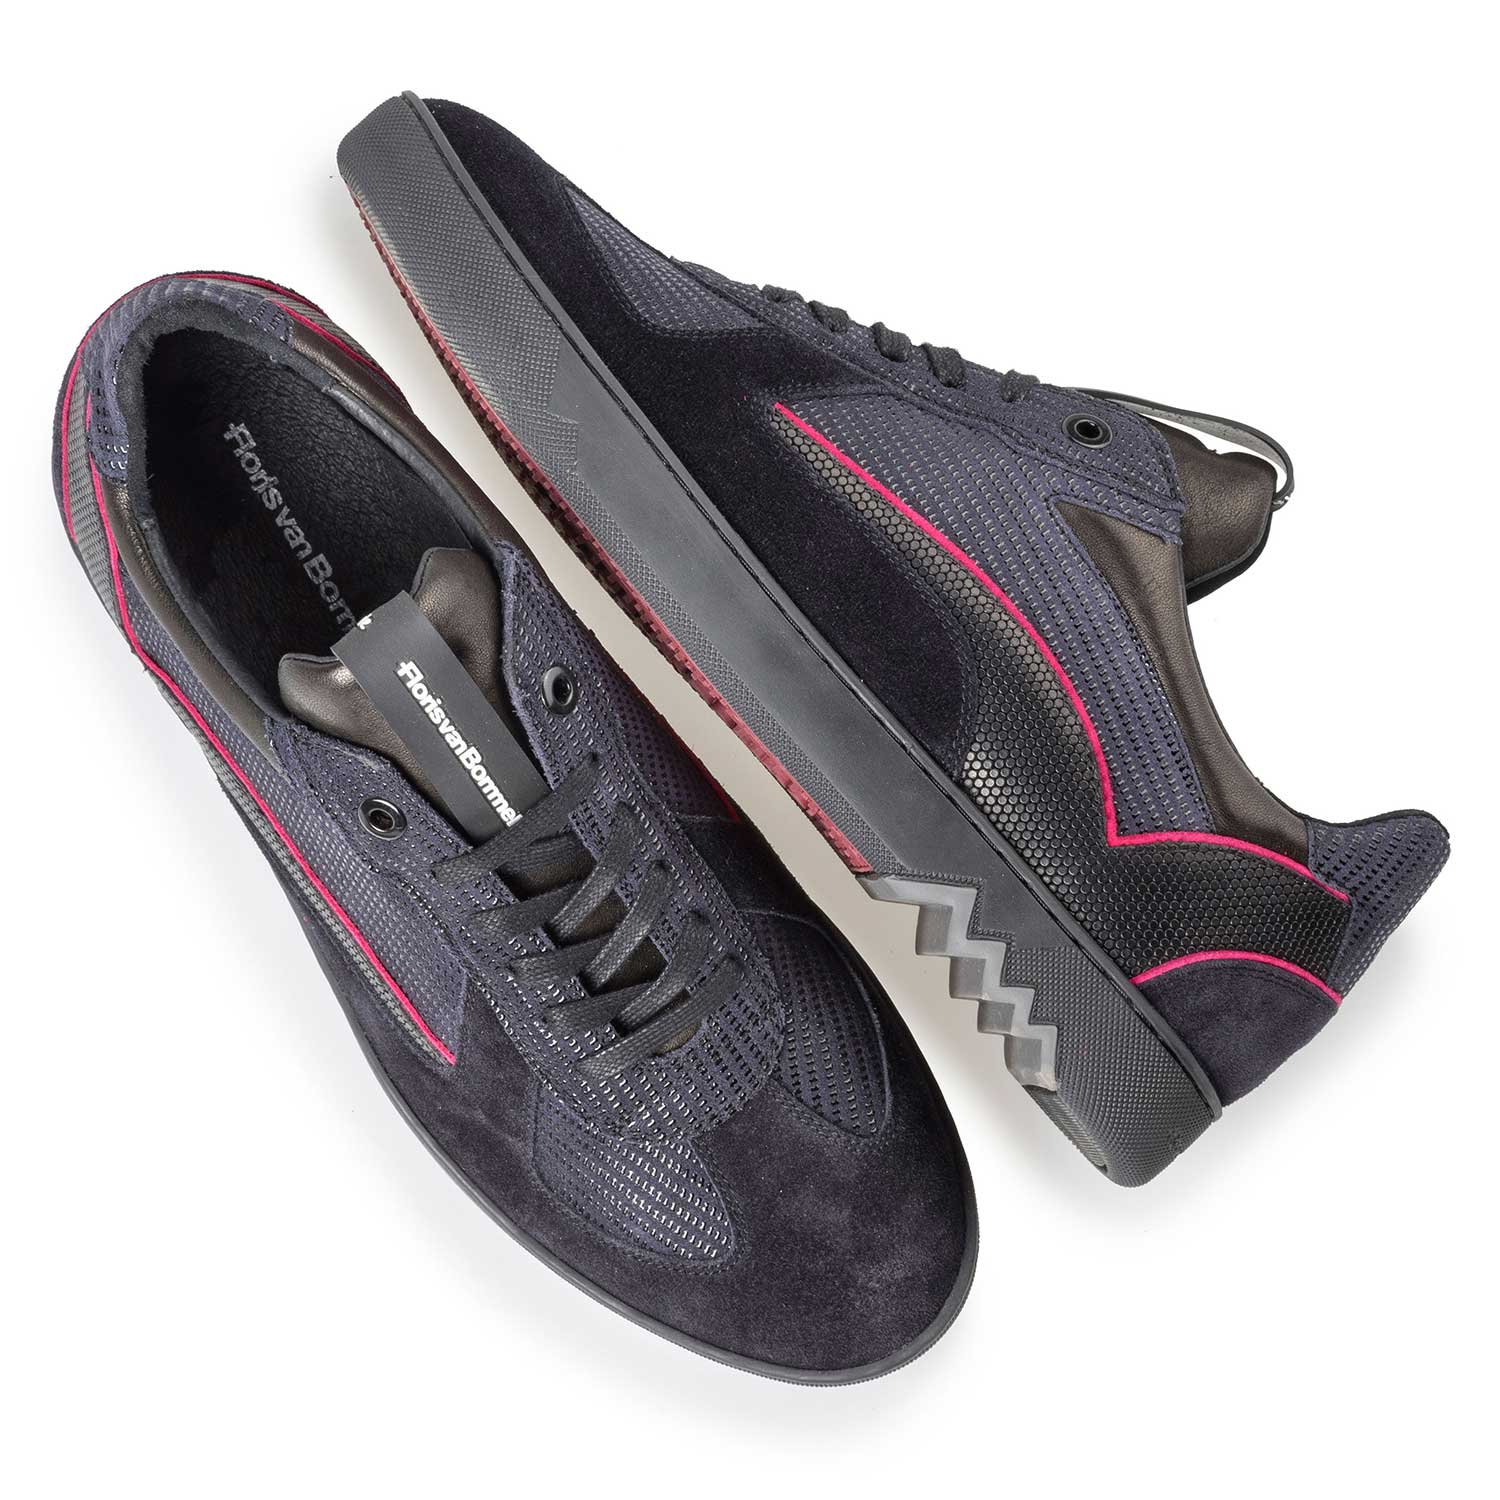 16242/07 - Dark blue sneaker with pink piping